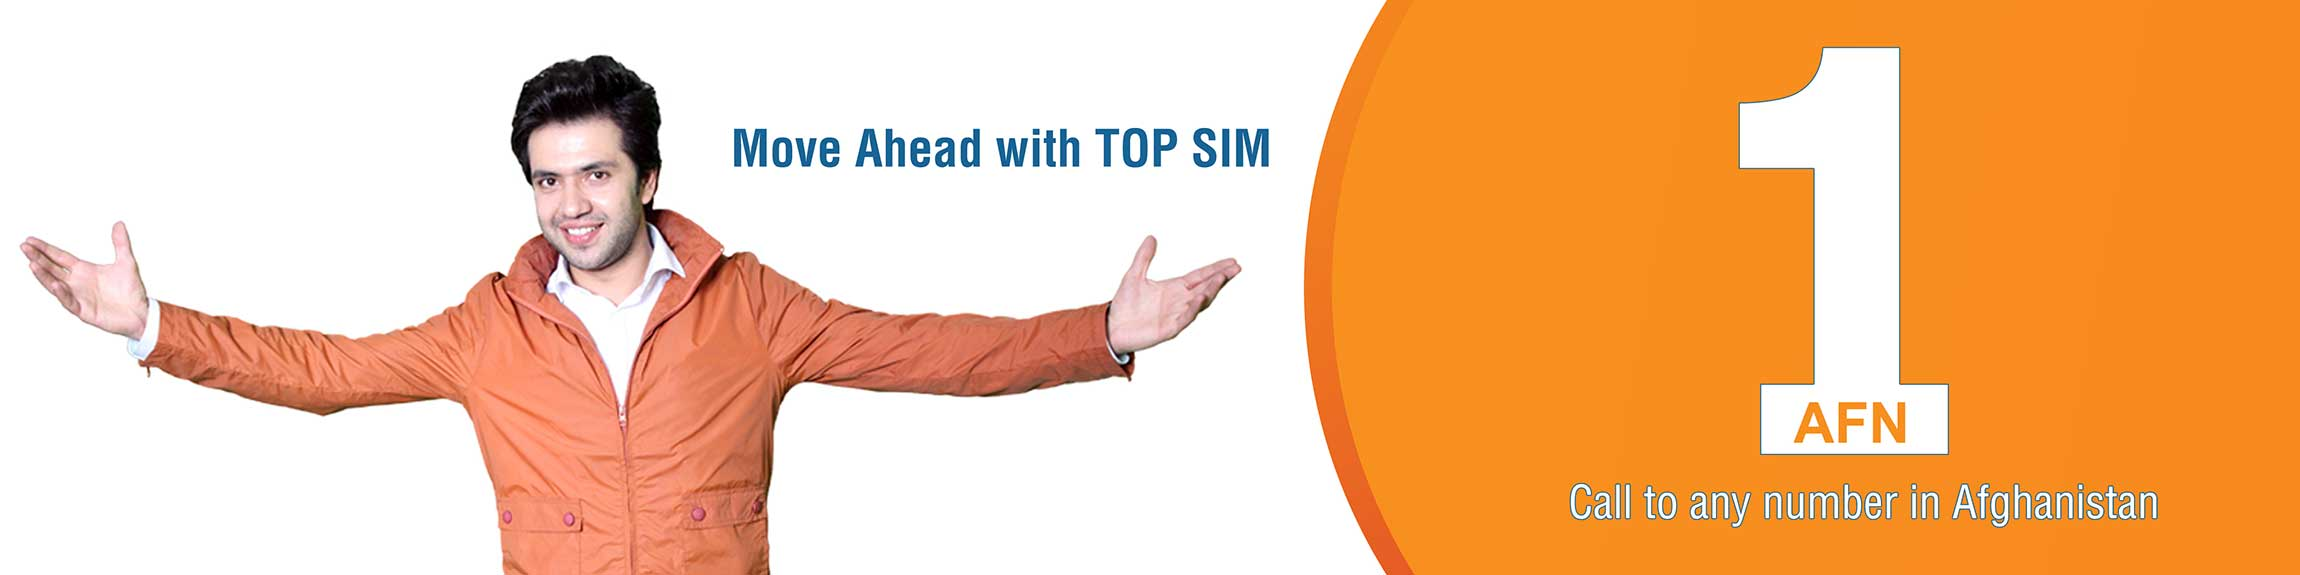 top-sim-english-website